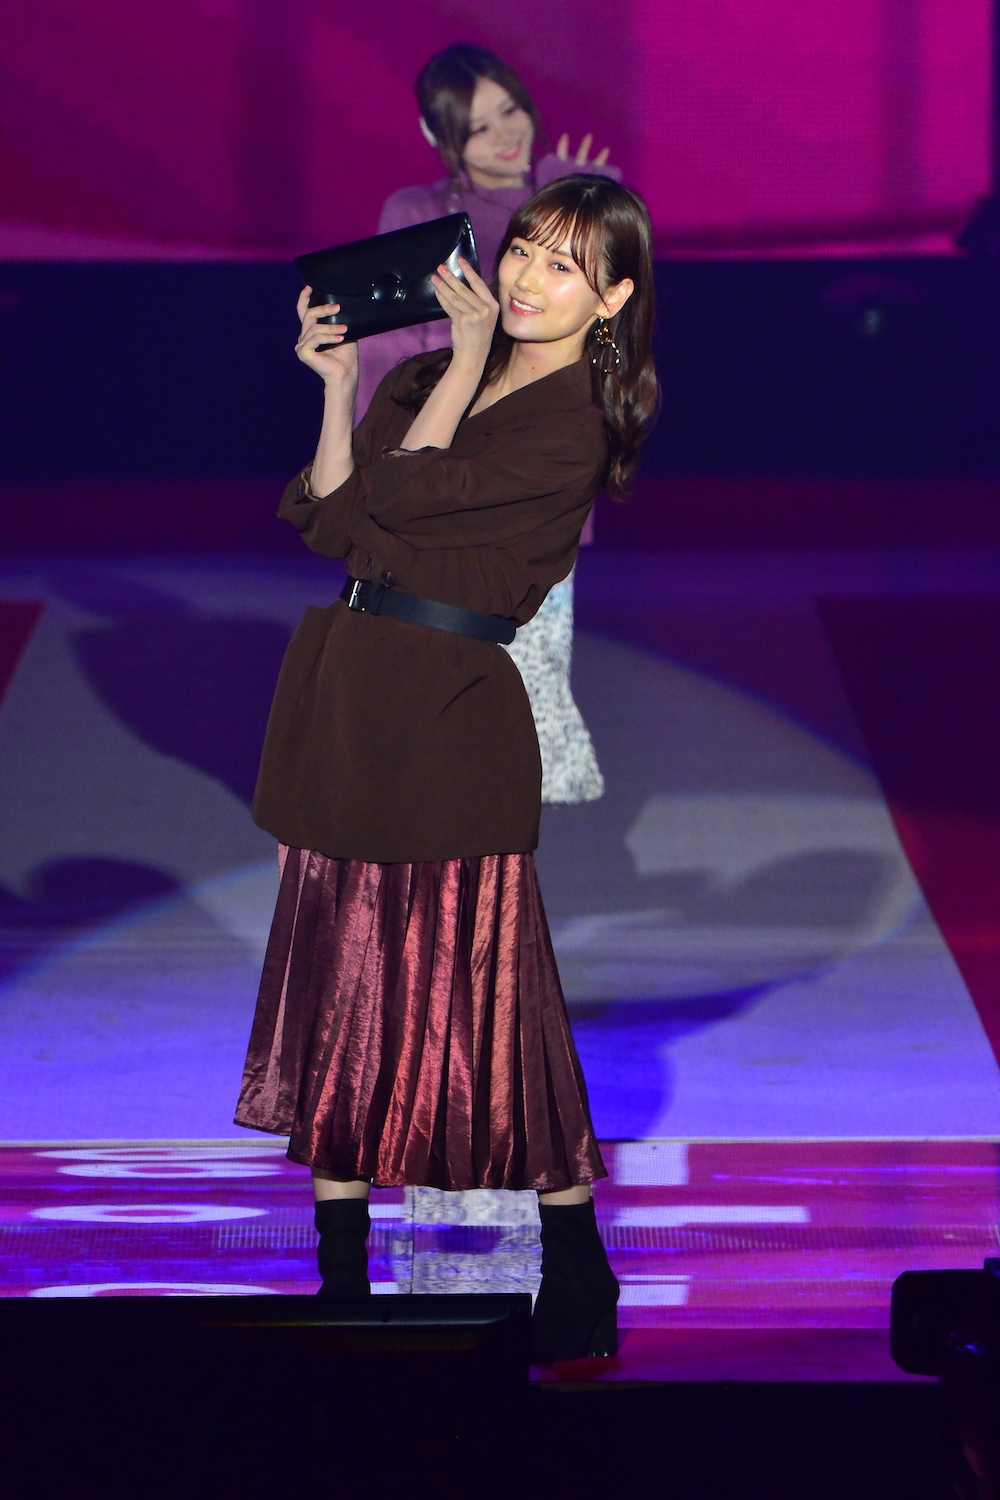 山下美月 乃木坂46(GirlsAward 2019 AUTUMN/WINTER)